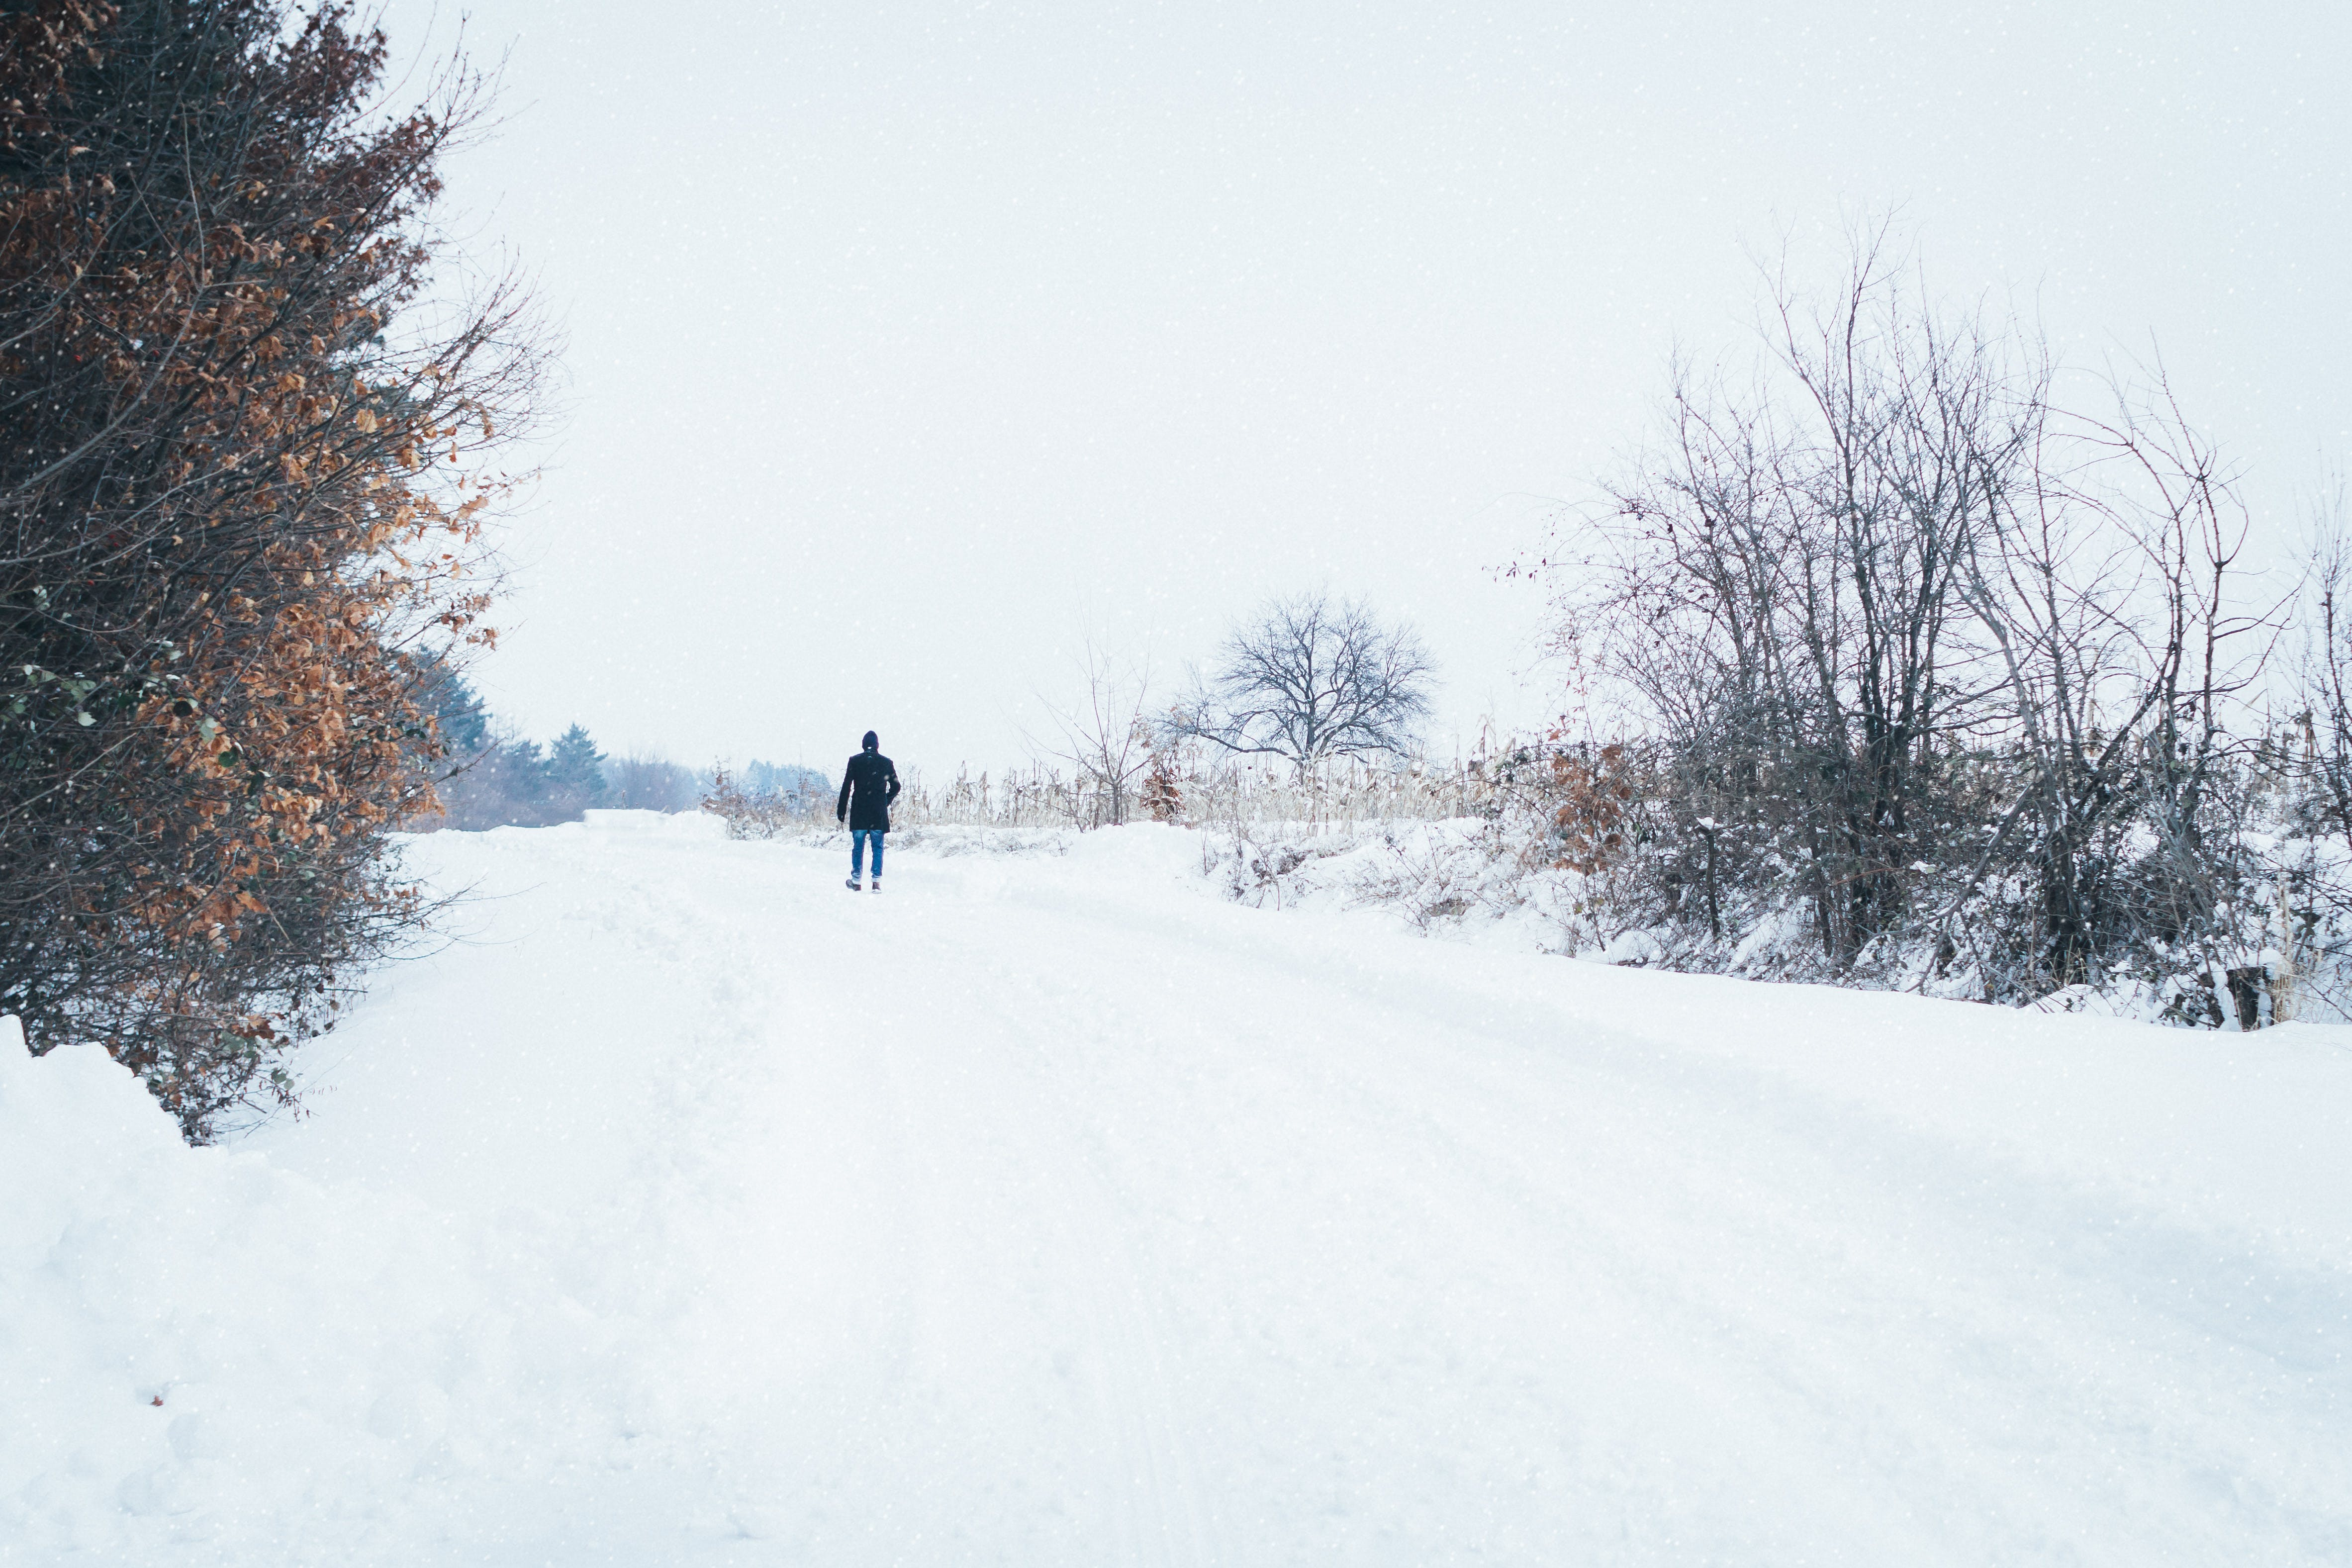 Man Walking on Dirt Road Covered by Snow